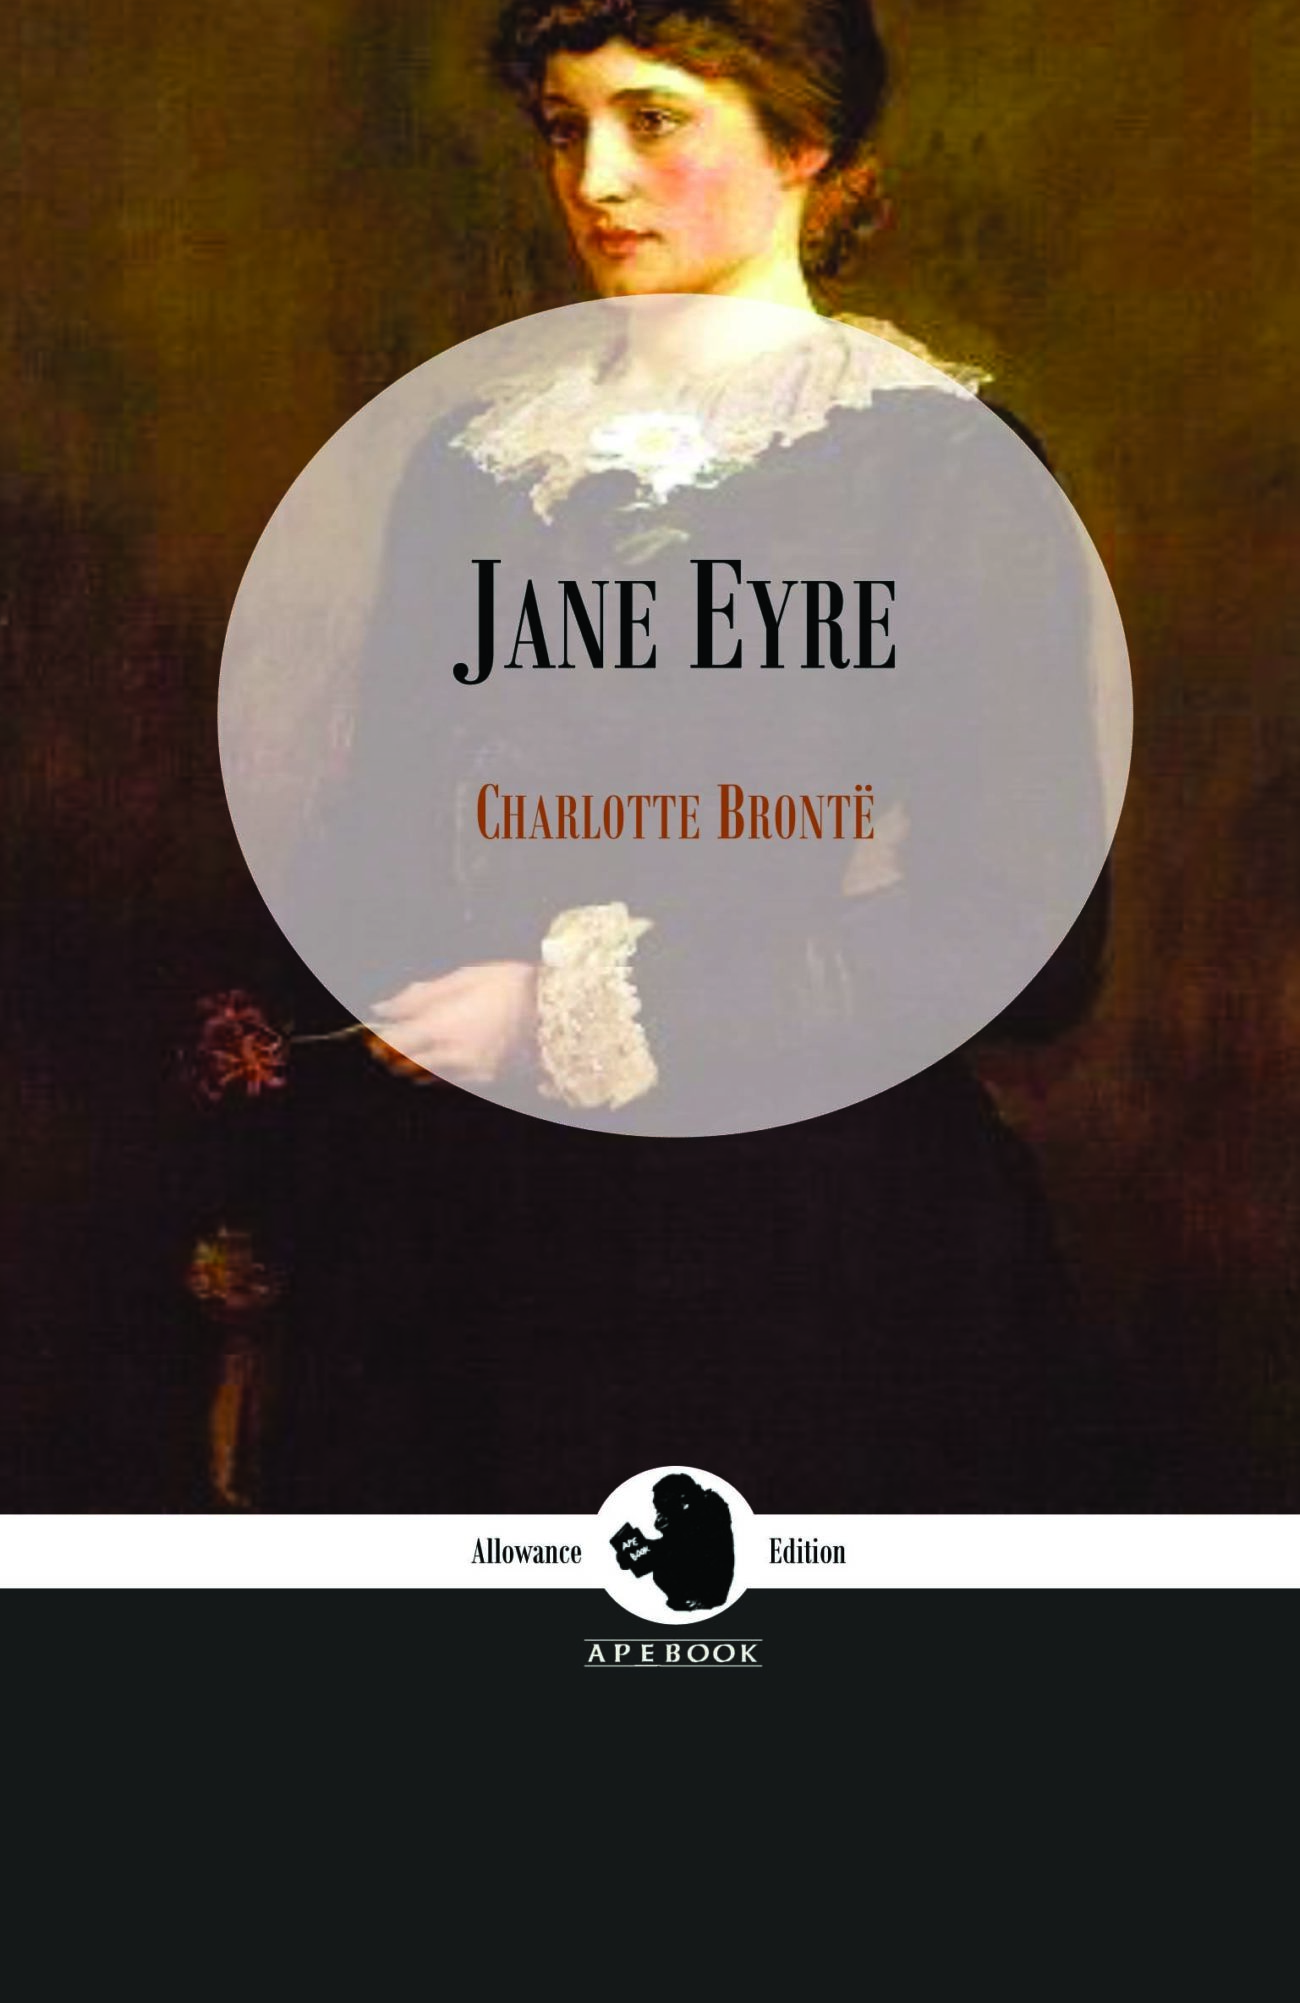 Charlotte Bronte: Jane Eyre (Allowance Edition)